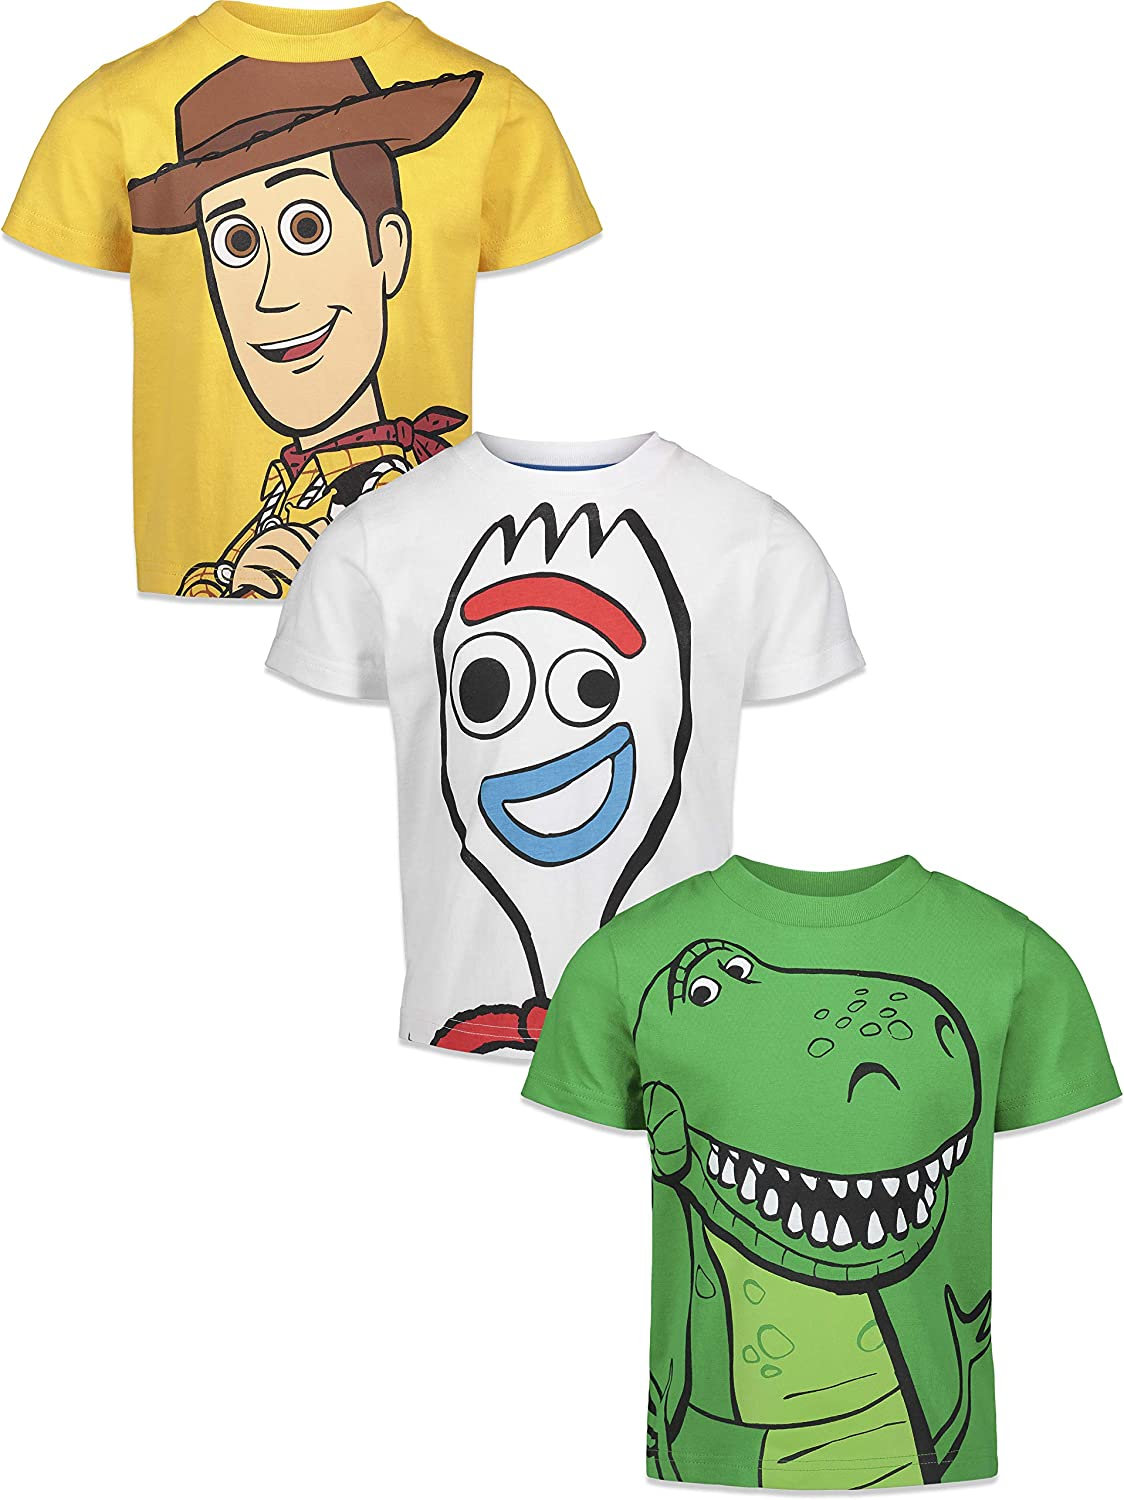 Disney Pixar Toy Story 3 Pack Graphic Short Sleeve T-Shirts